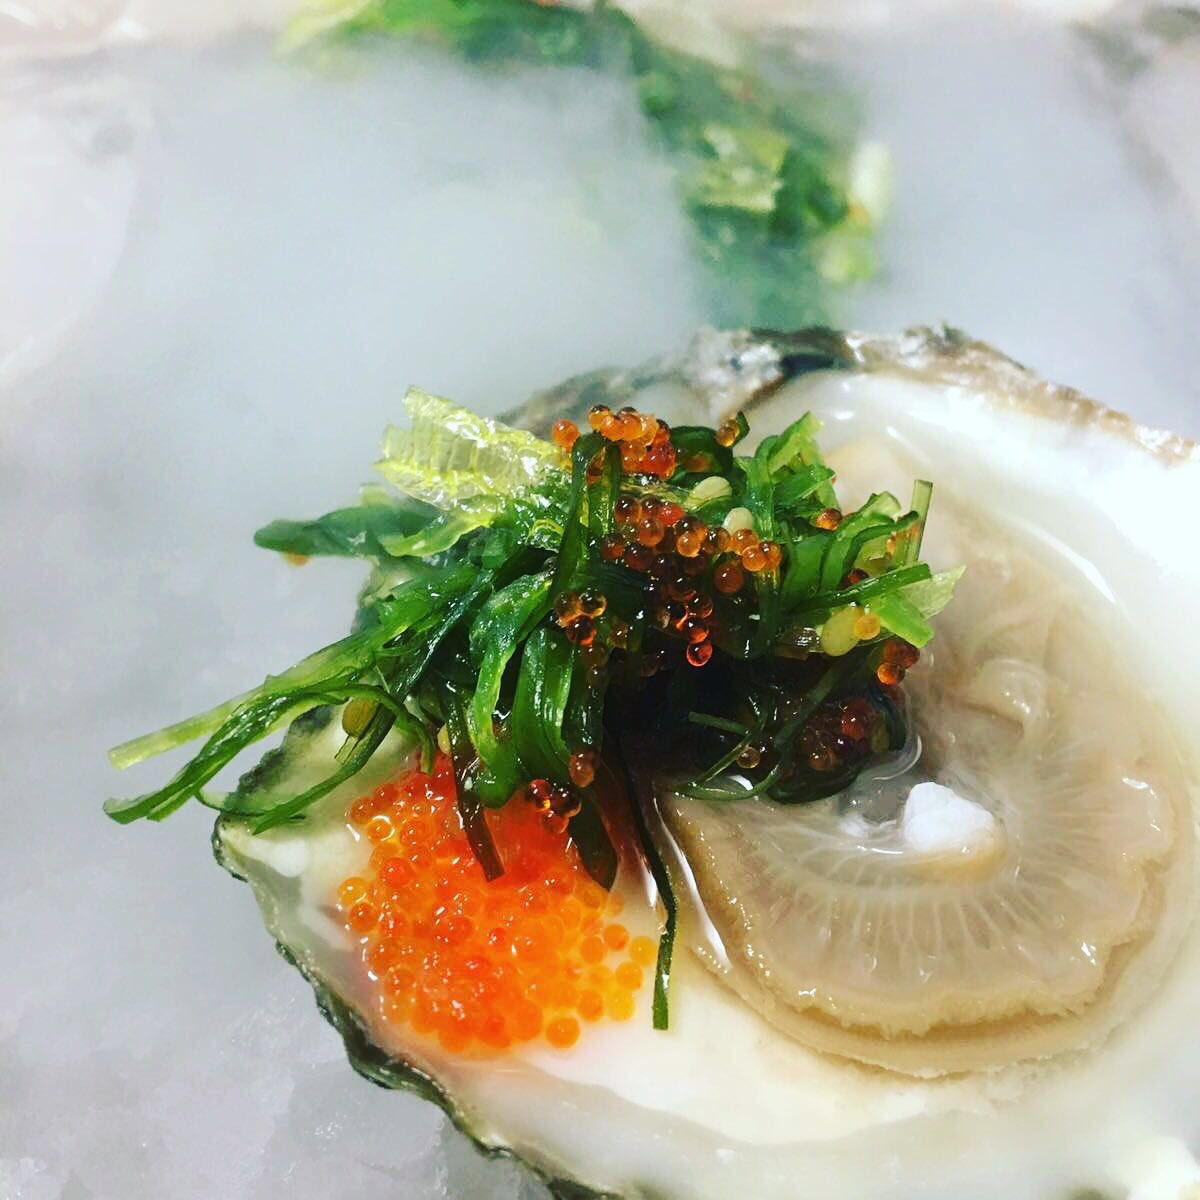 RT @oliviaslacala: Our Spanish national oysters with citrus ponzu and wakami seaweed from our new seafood bar #delicious https://t.co/cJDgV…